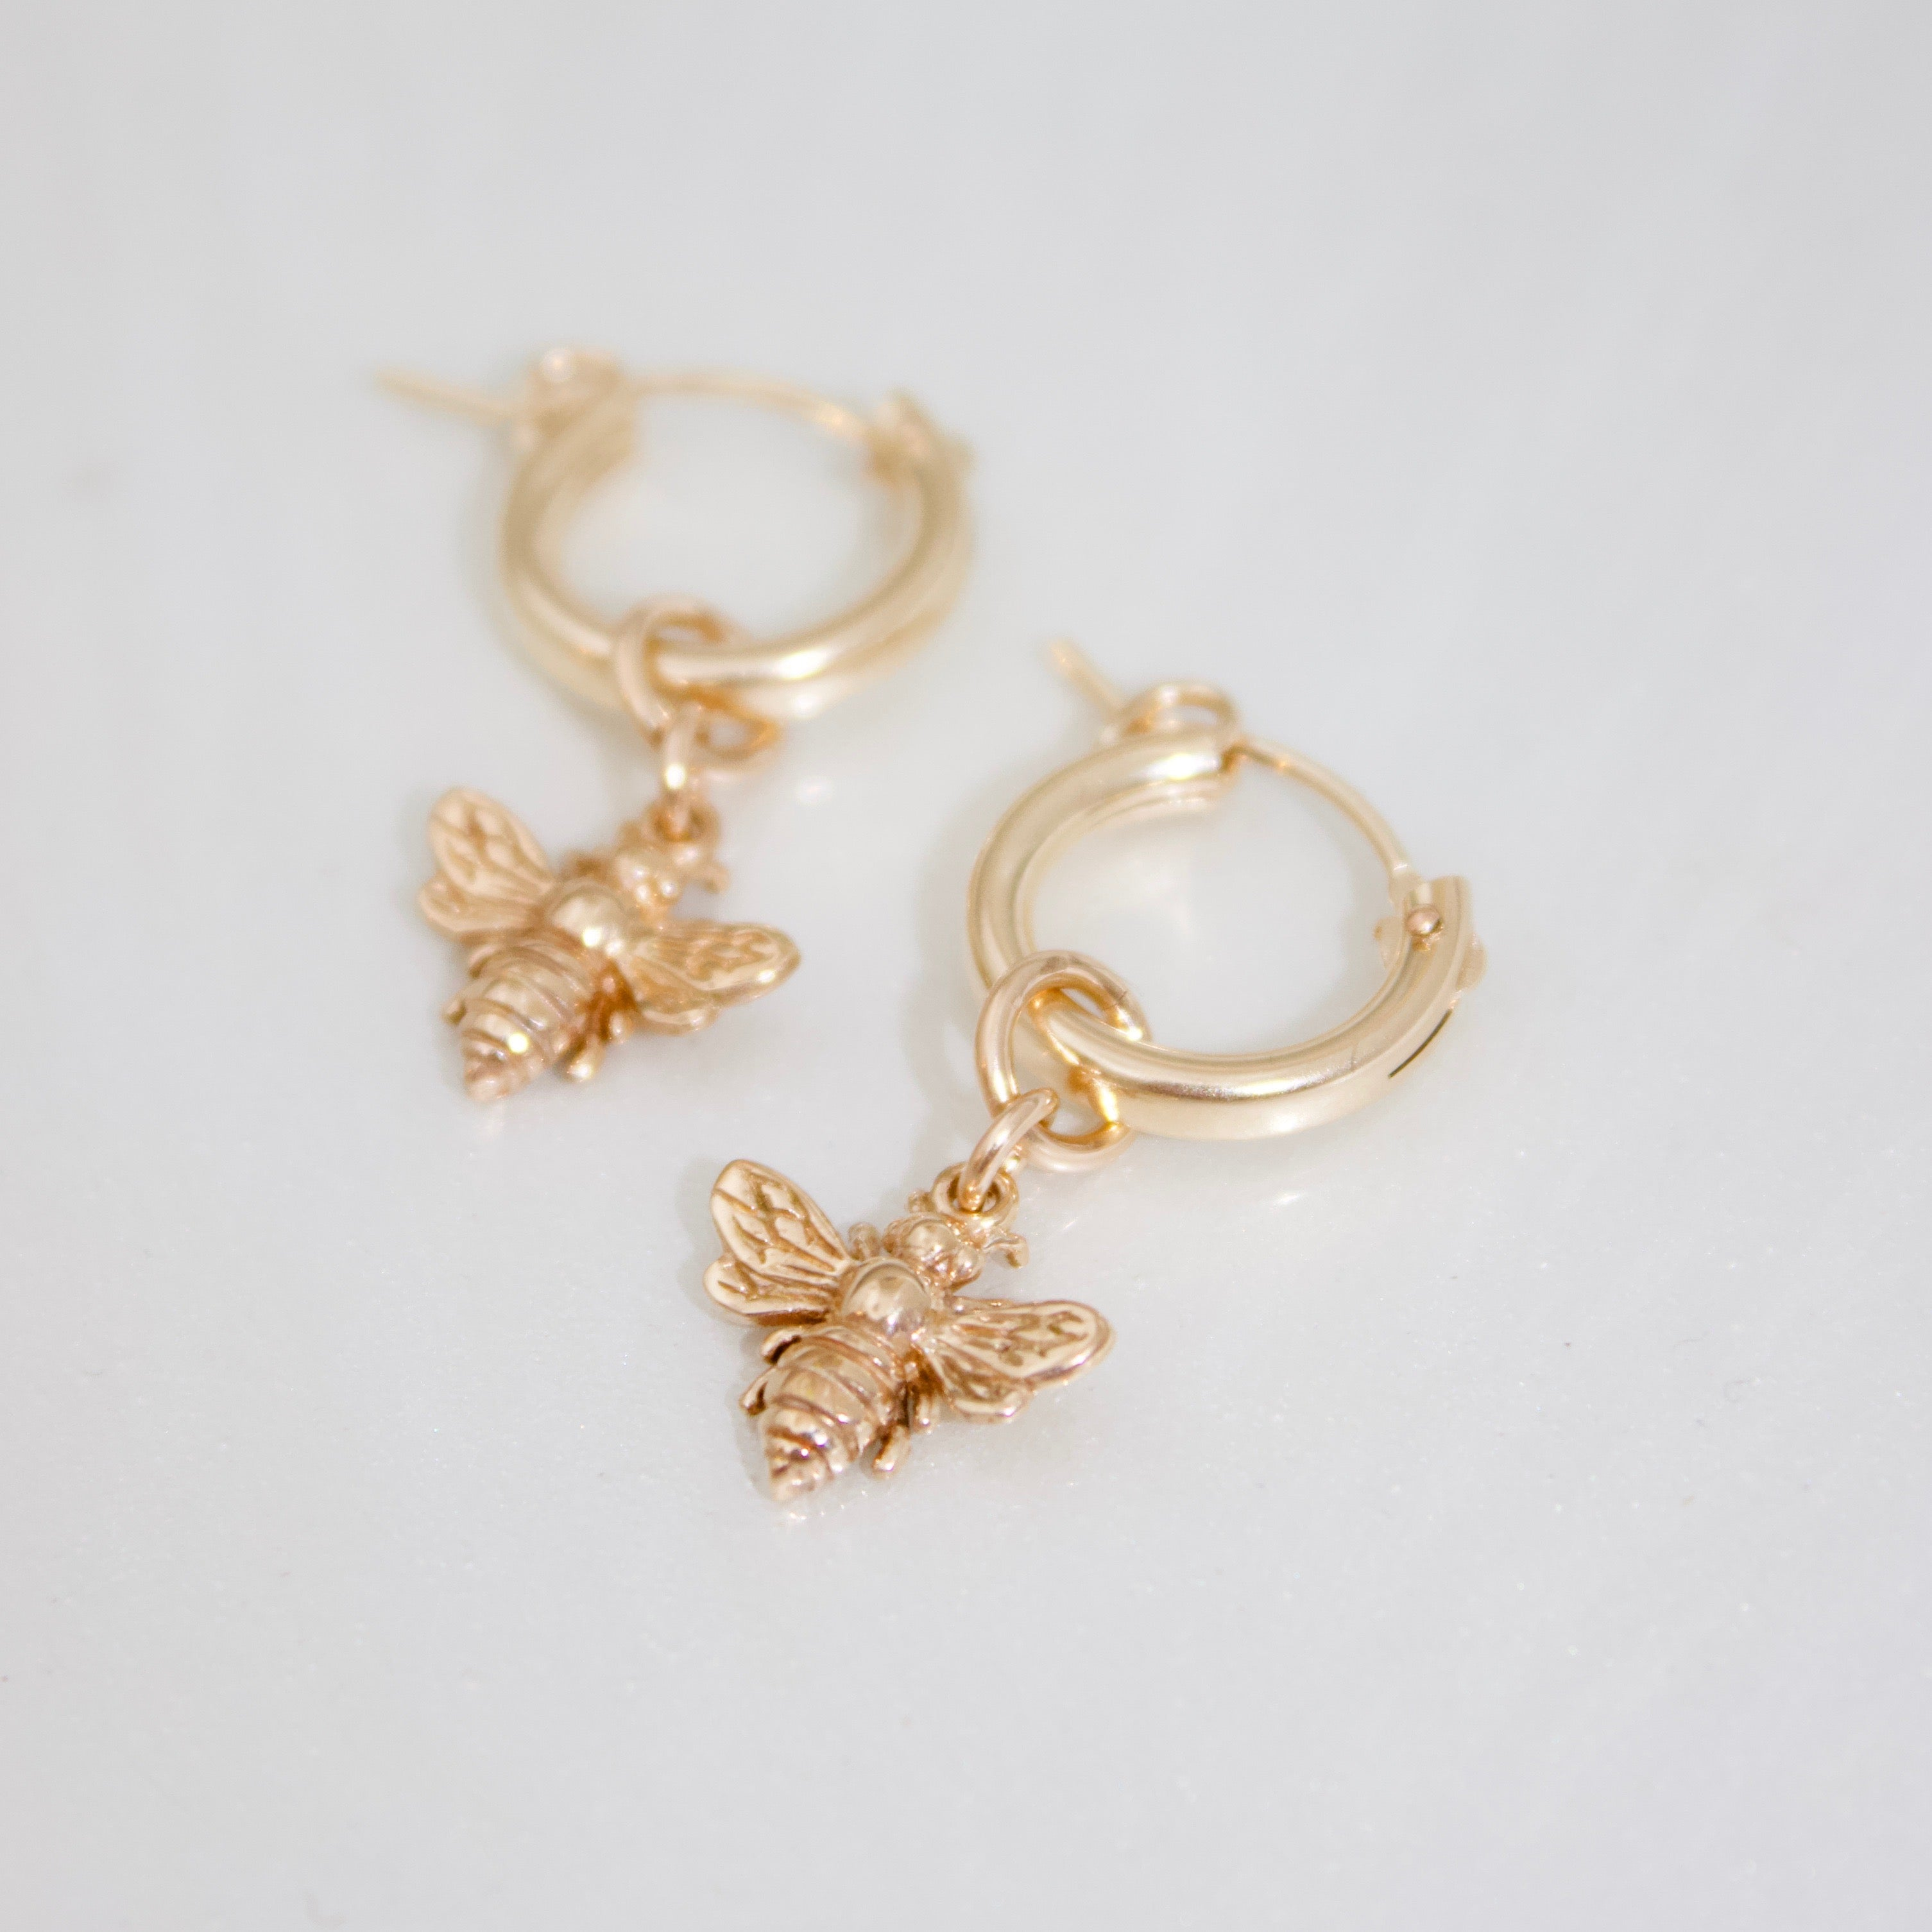 Bee and Gold-Filled Hoop Earrings